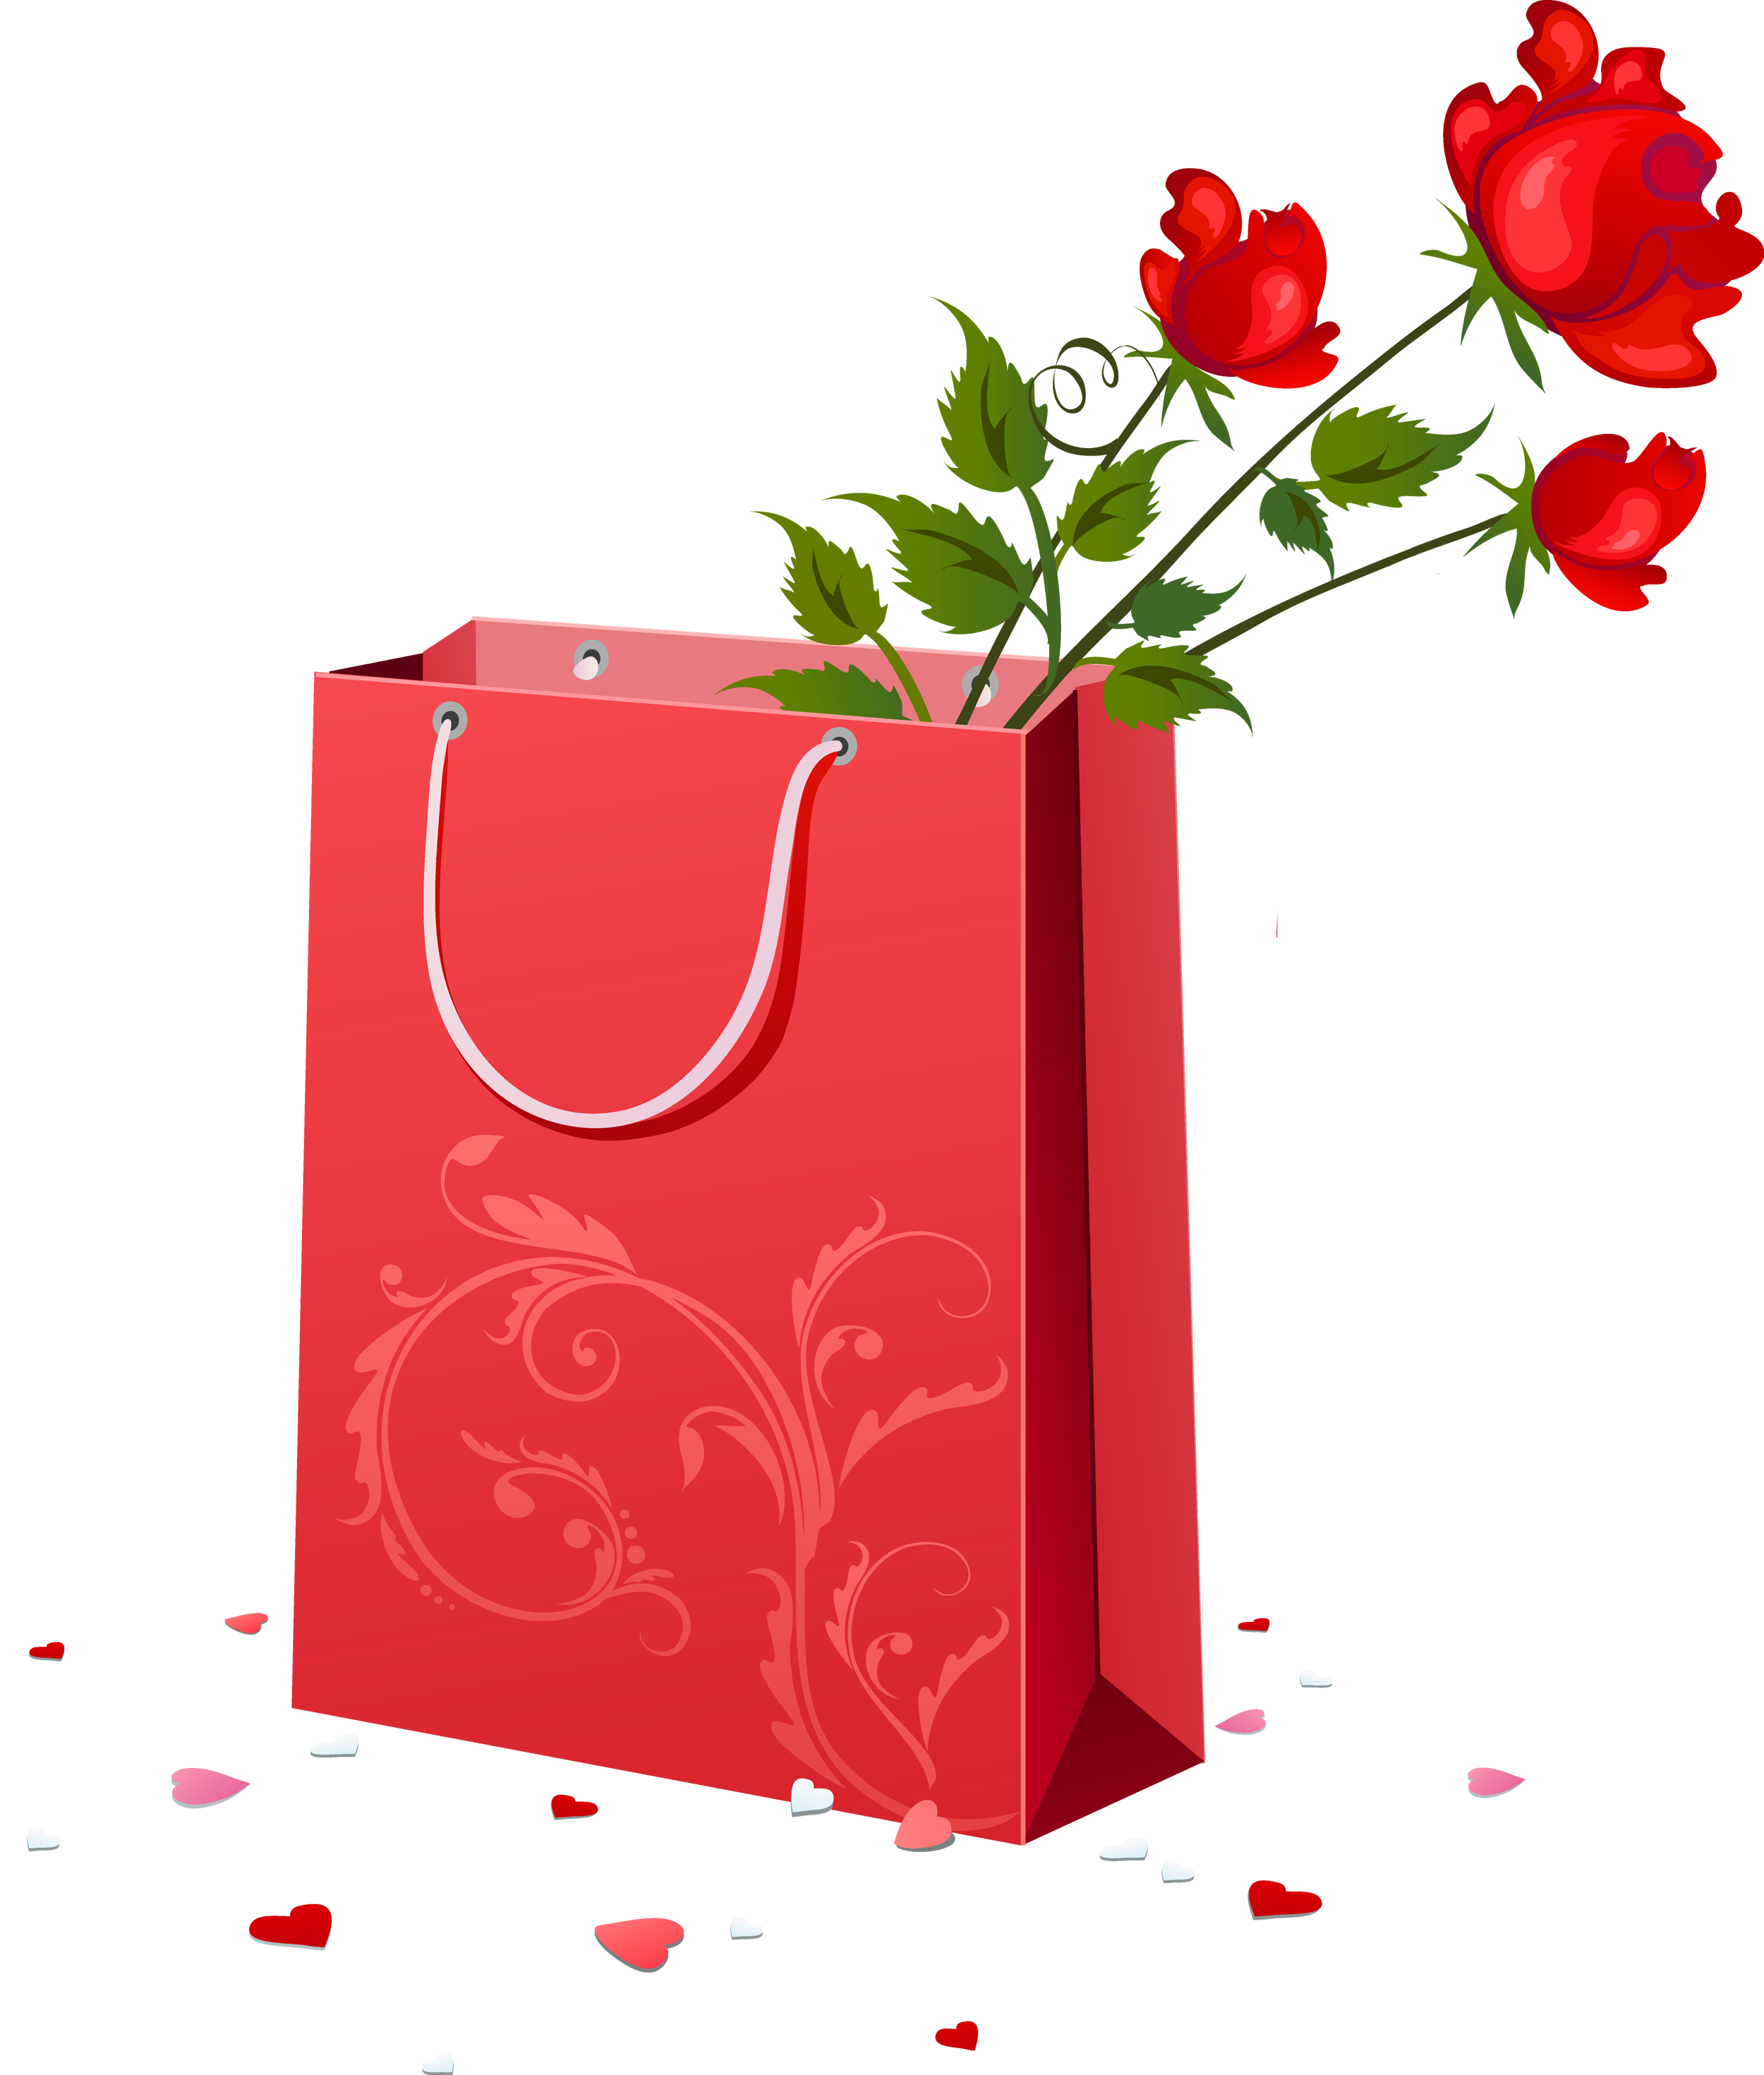 Red with roses png. Gift clipart gift bag